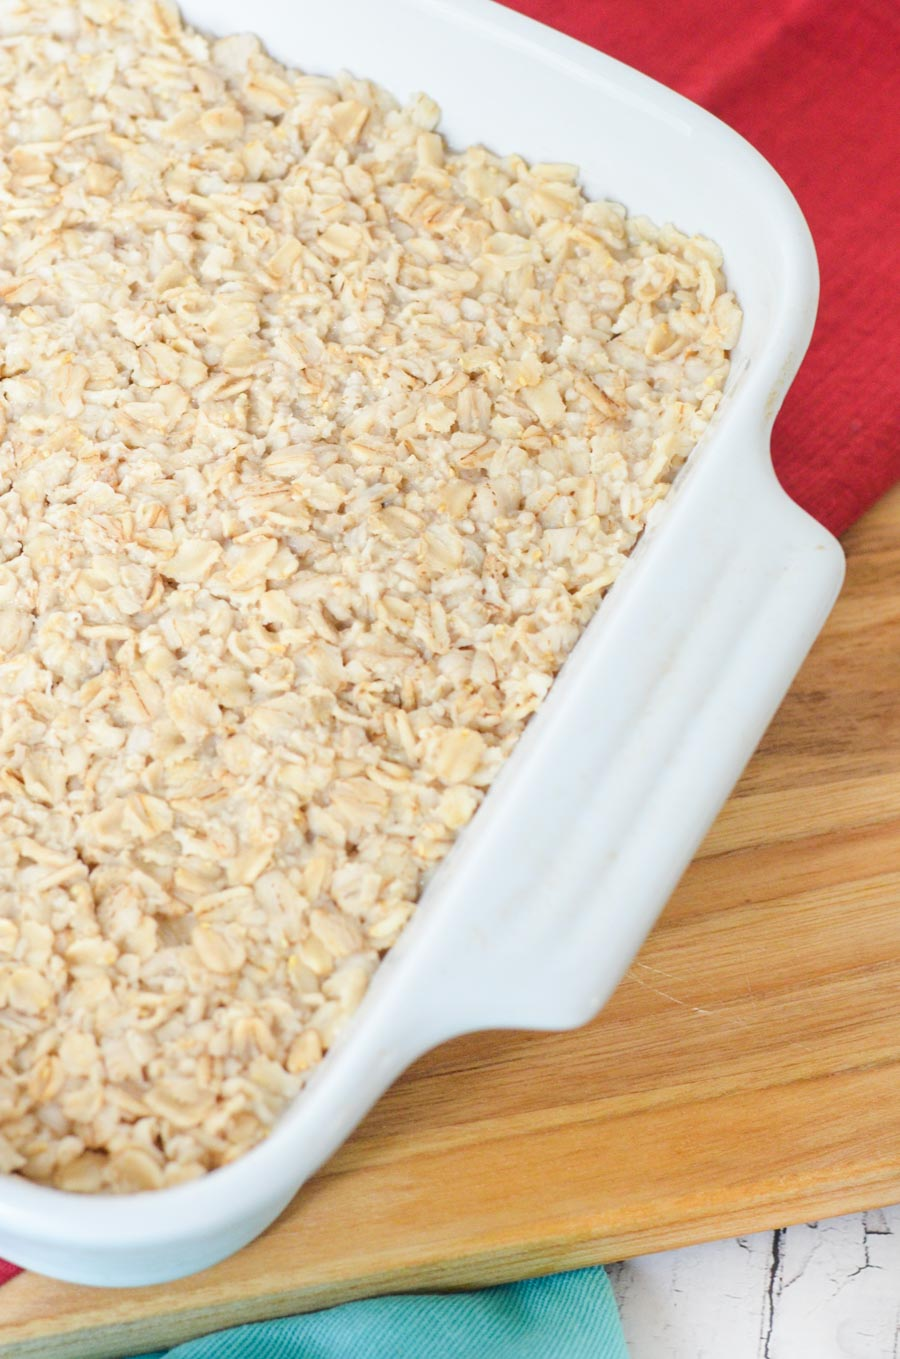 Pan Fried Oatmeal Breakfast Recipe with Leftover Oatmeal